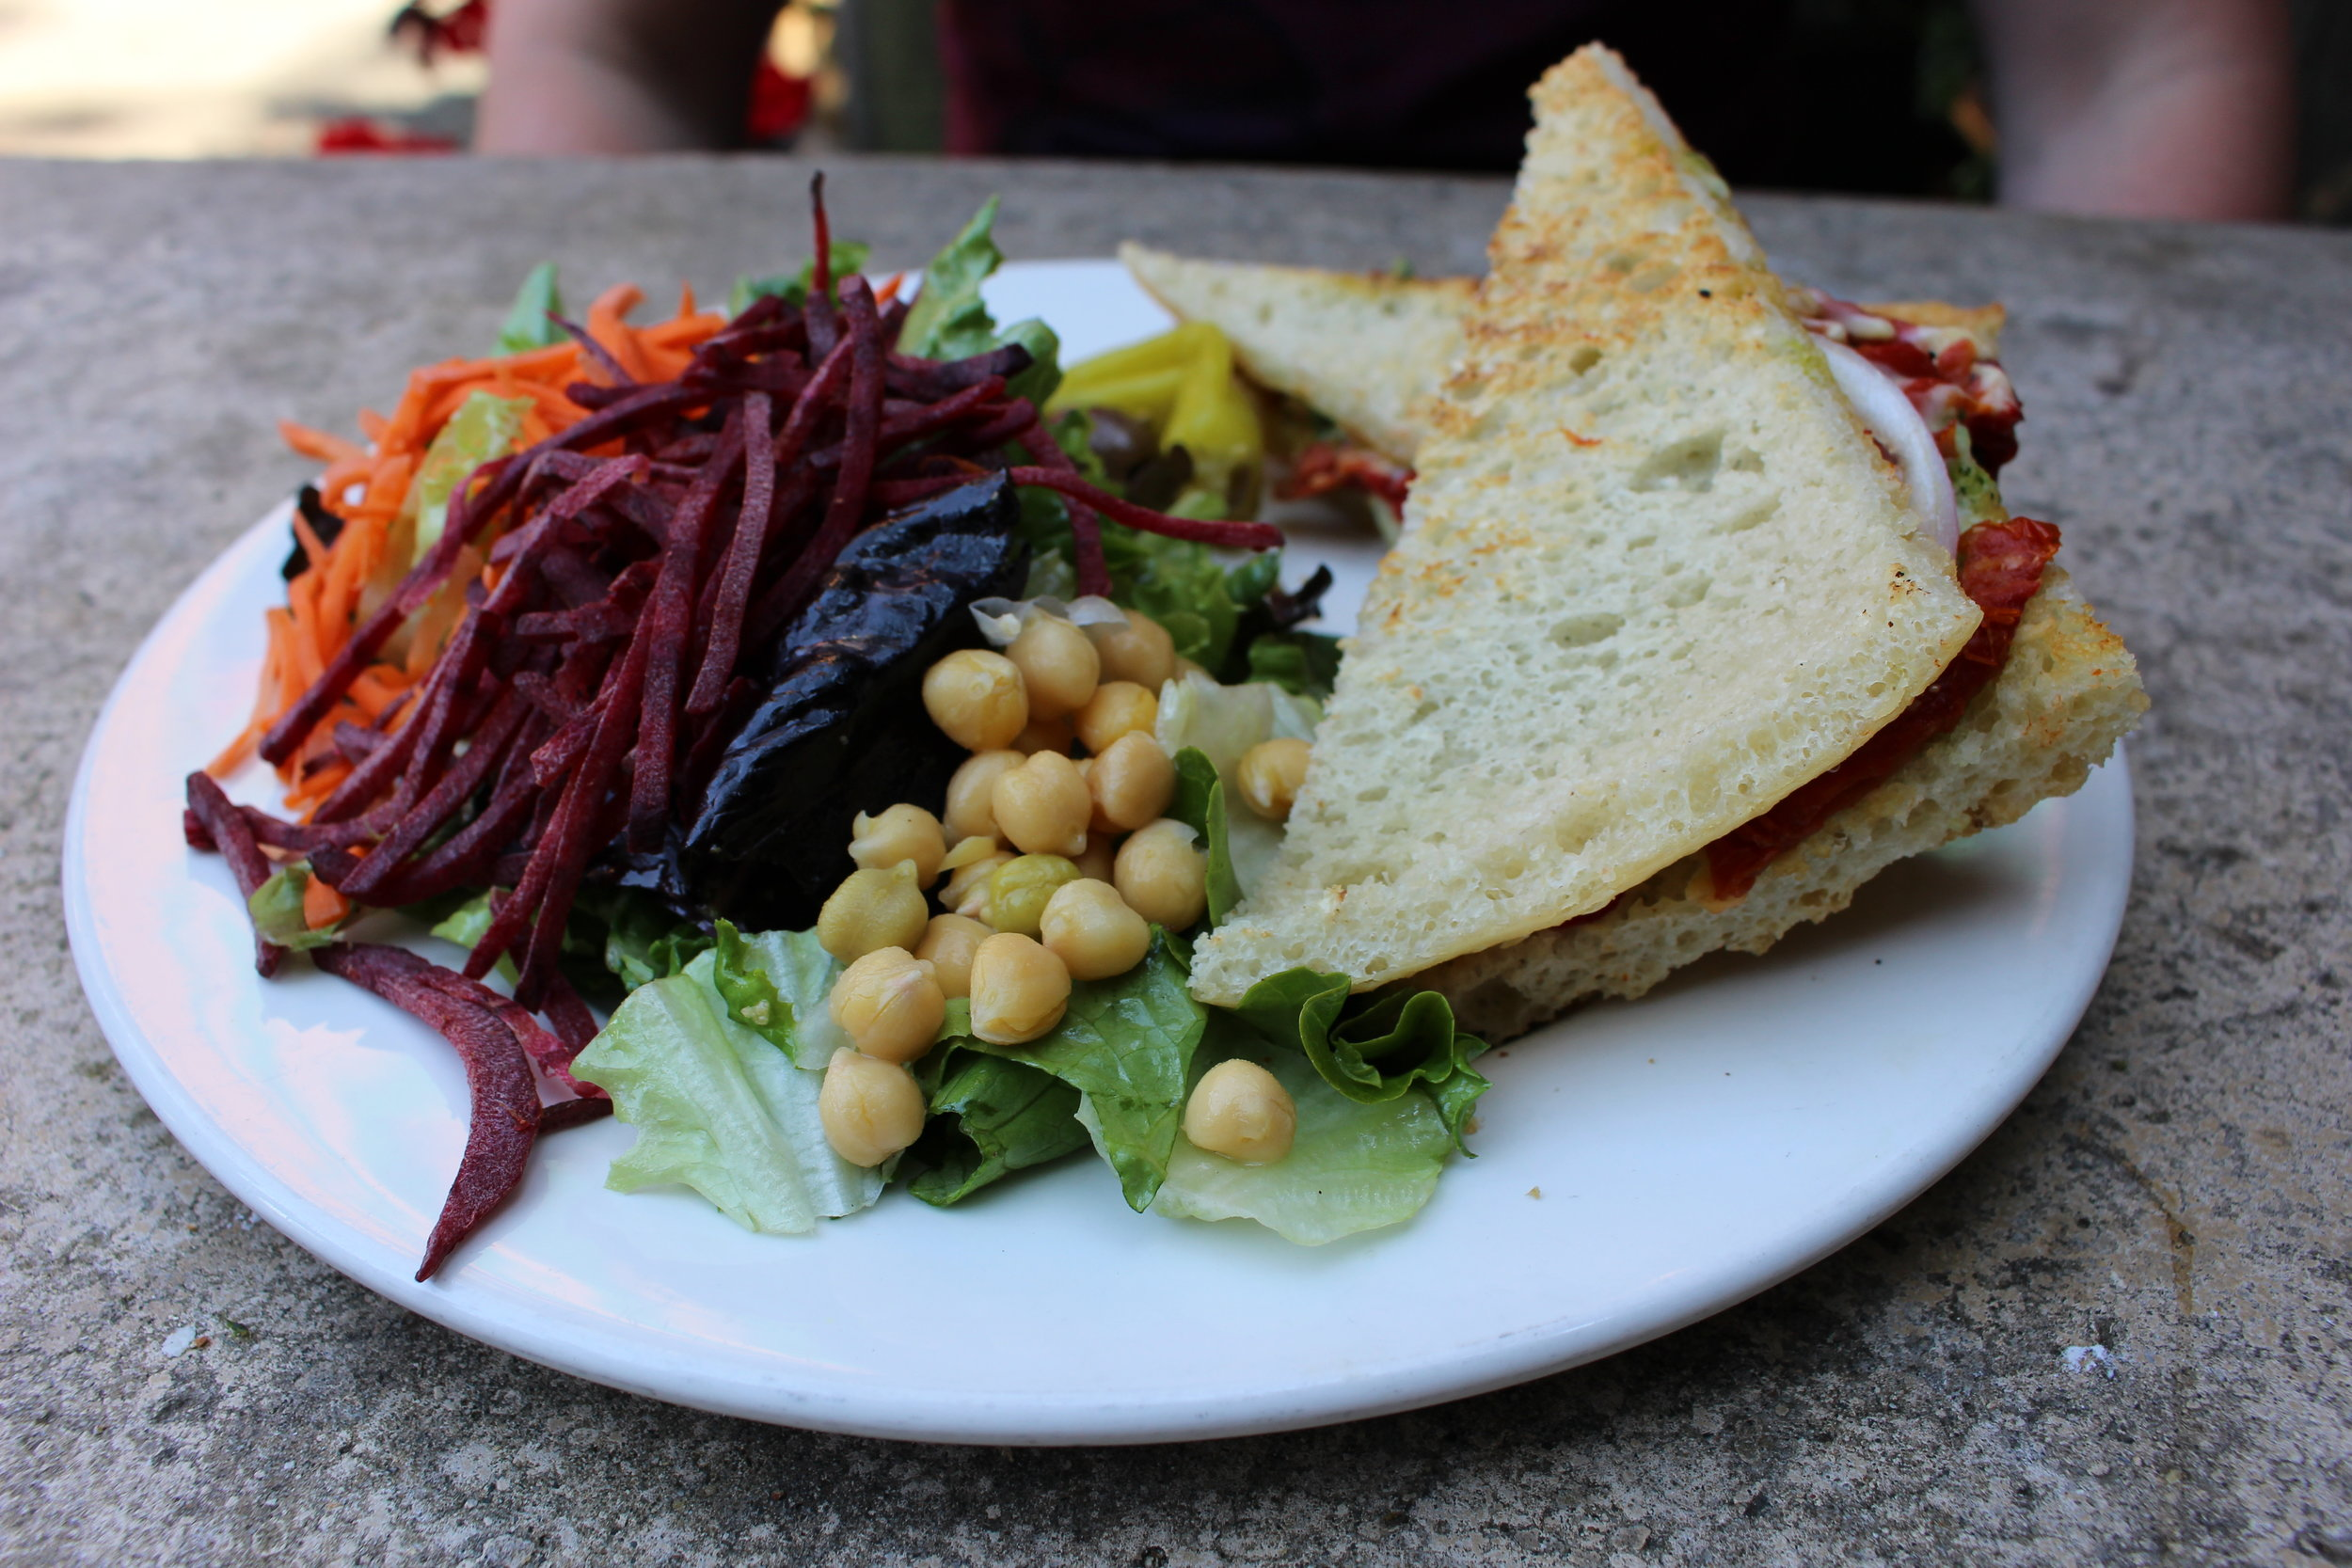 Dave's panino with a loaded side salad